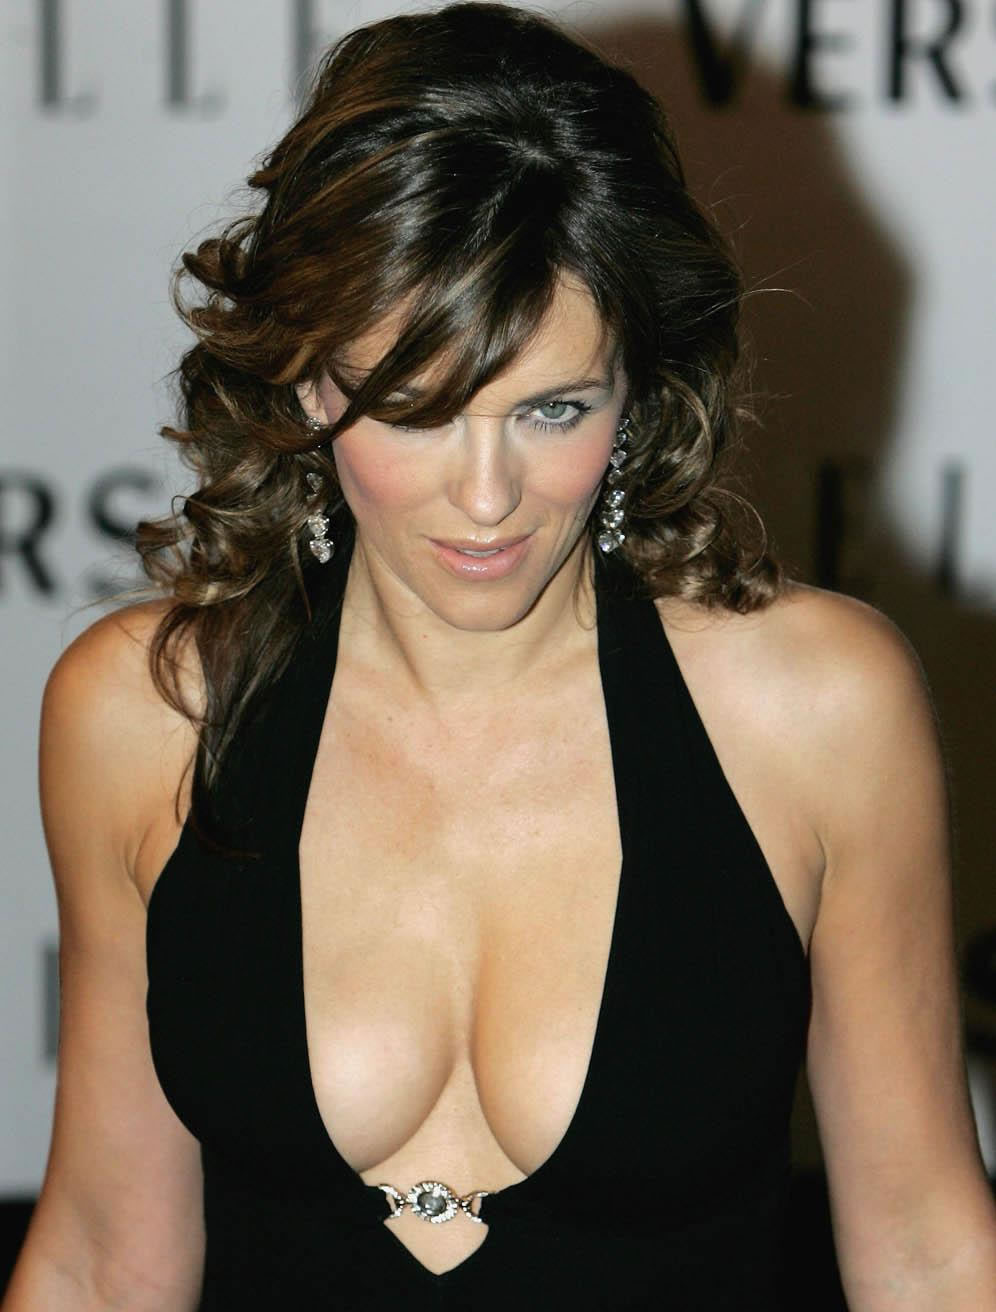 Elizabeth Hurley - Actress Elizabeth Hurley is reportedly working to get ...